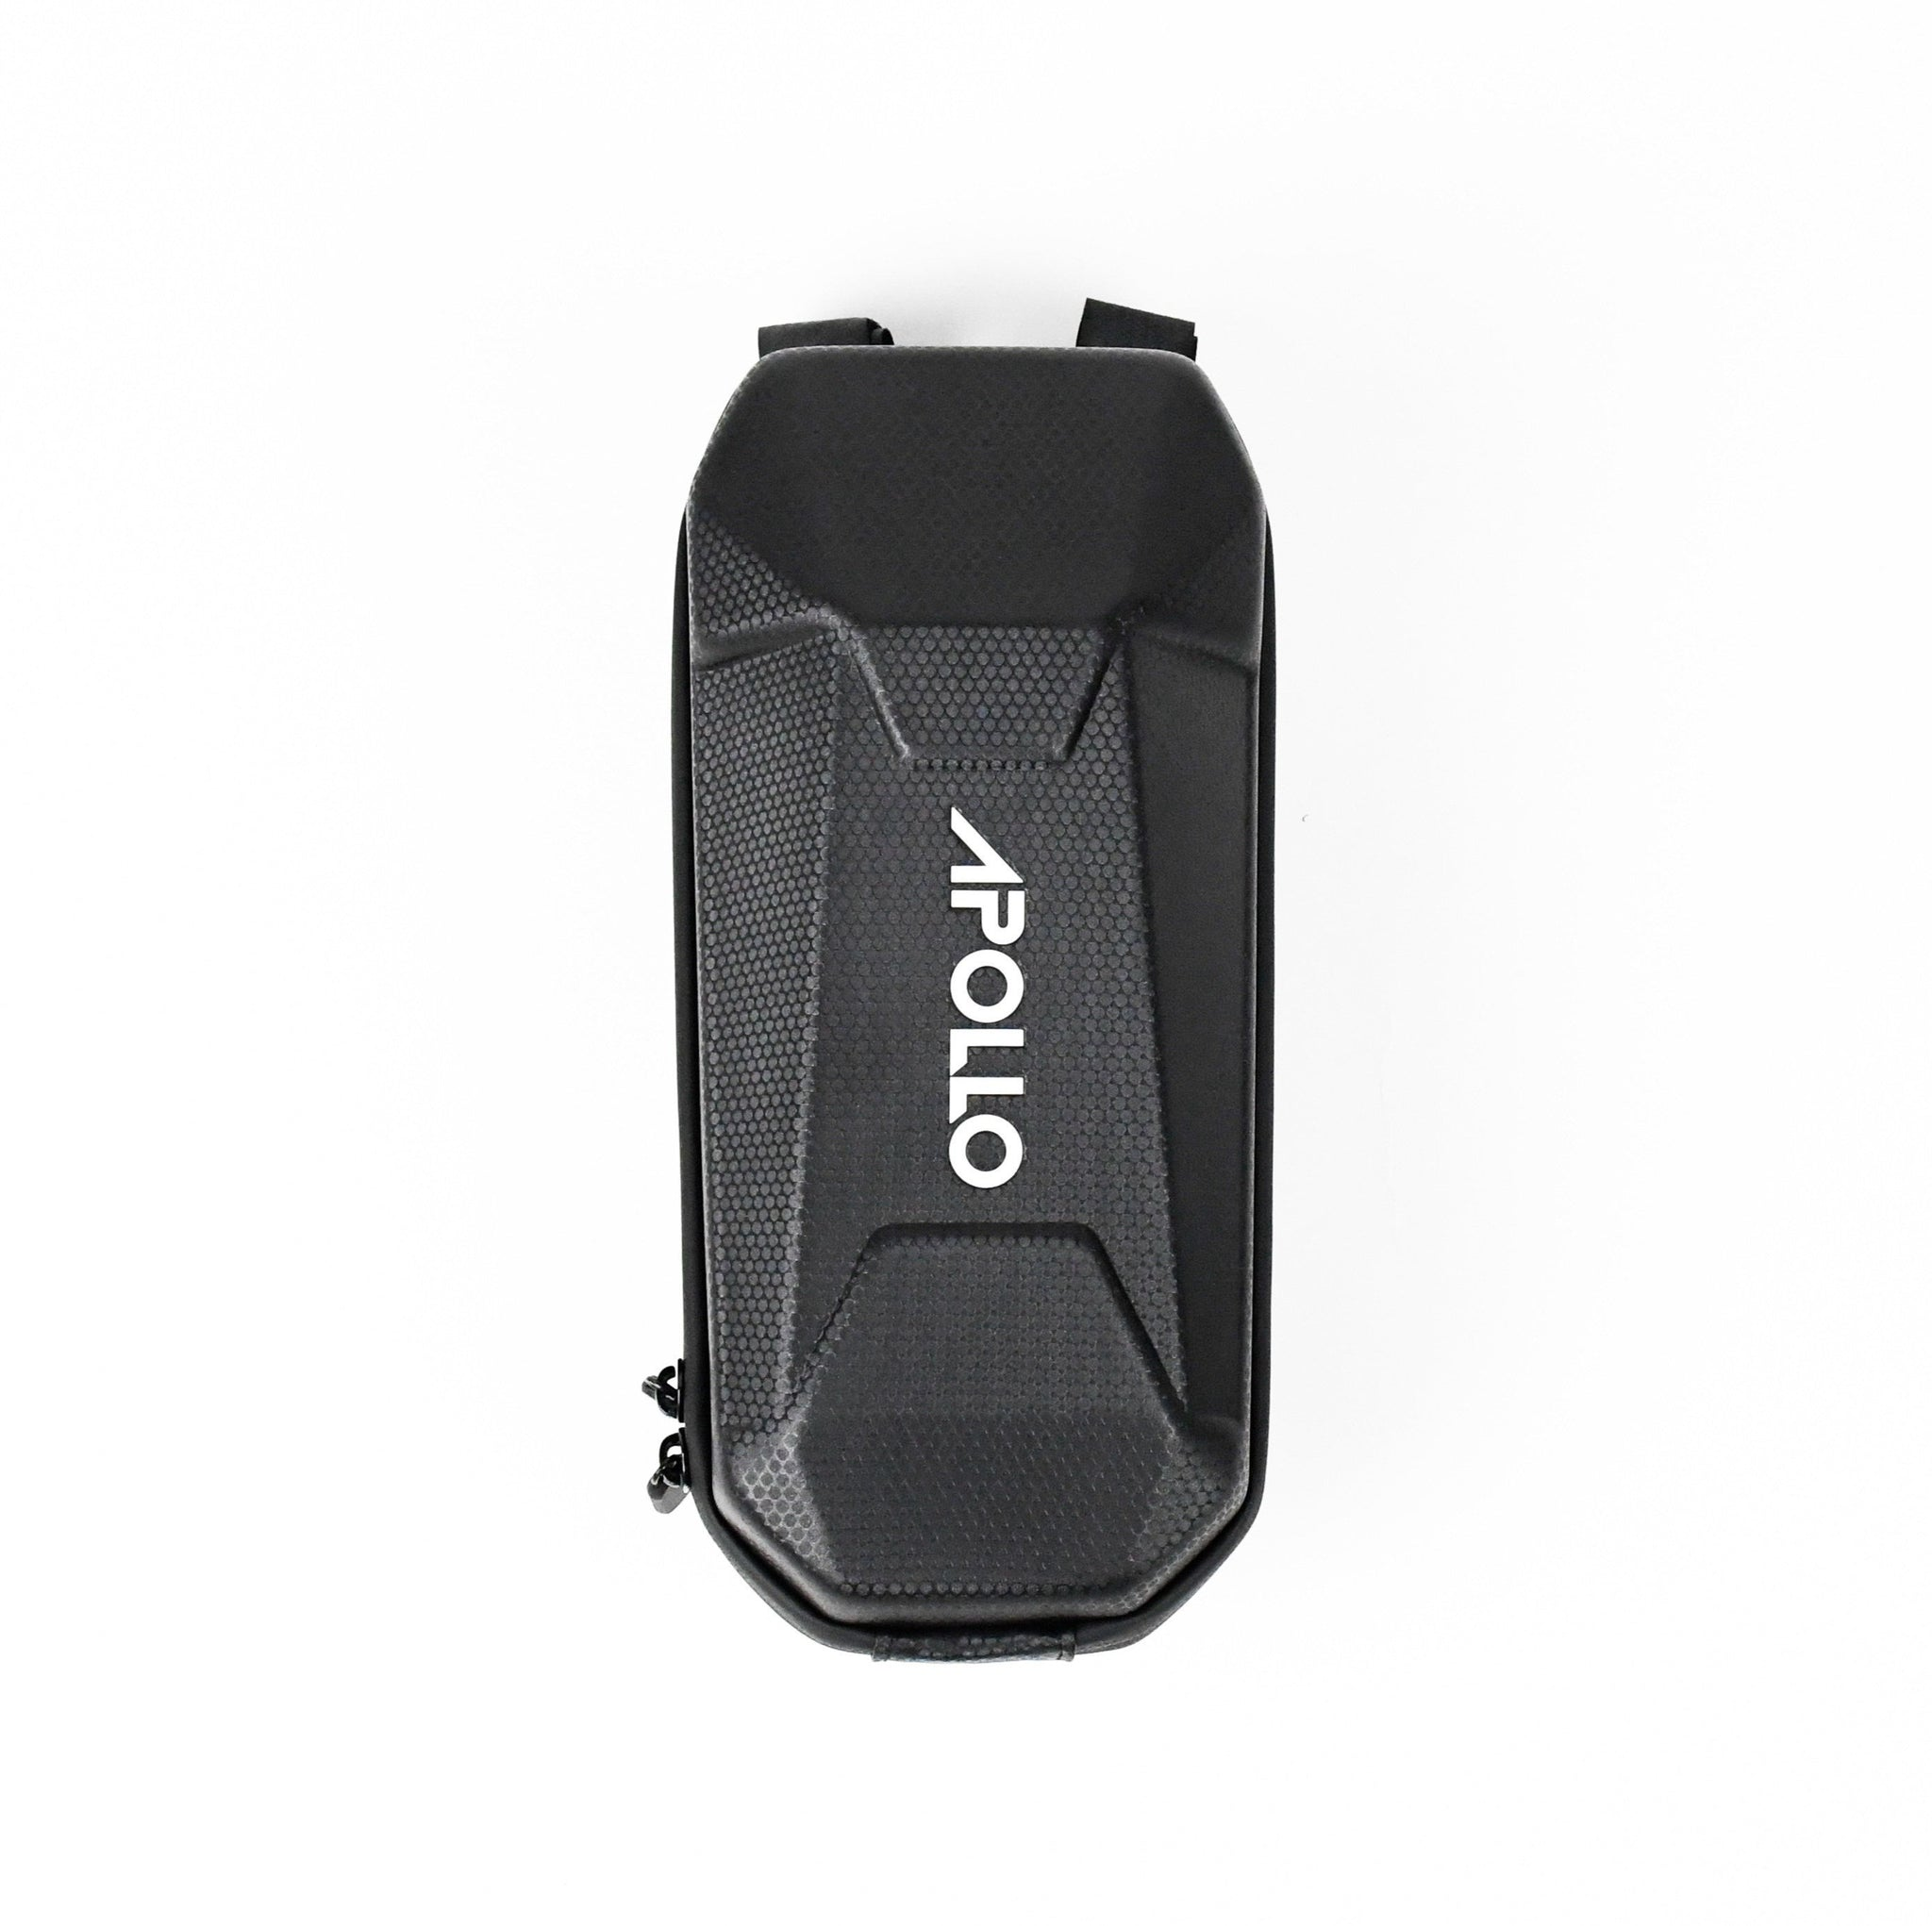 Apollo Bag - electric scooter - Apollo Scooters